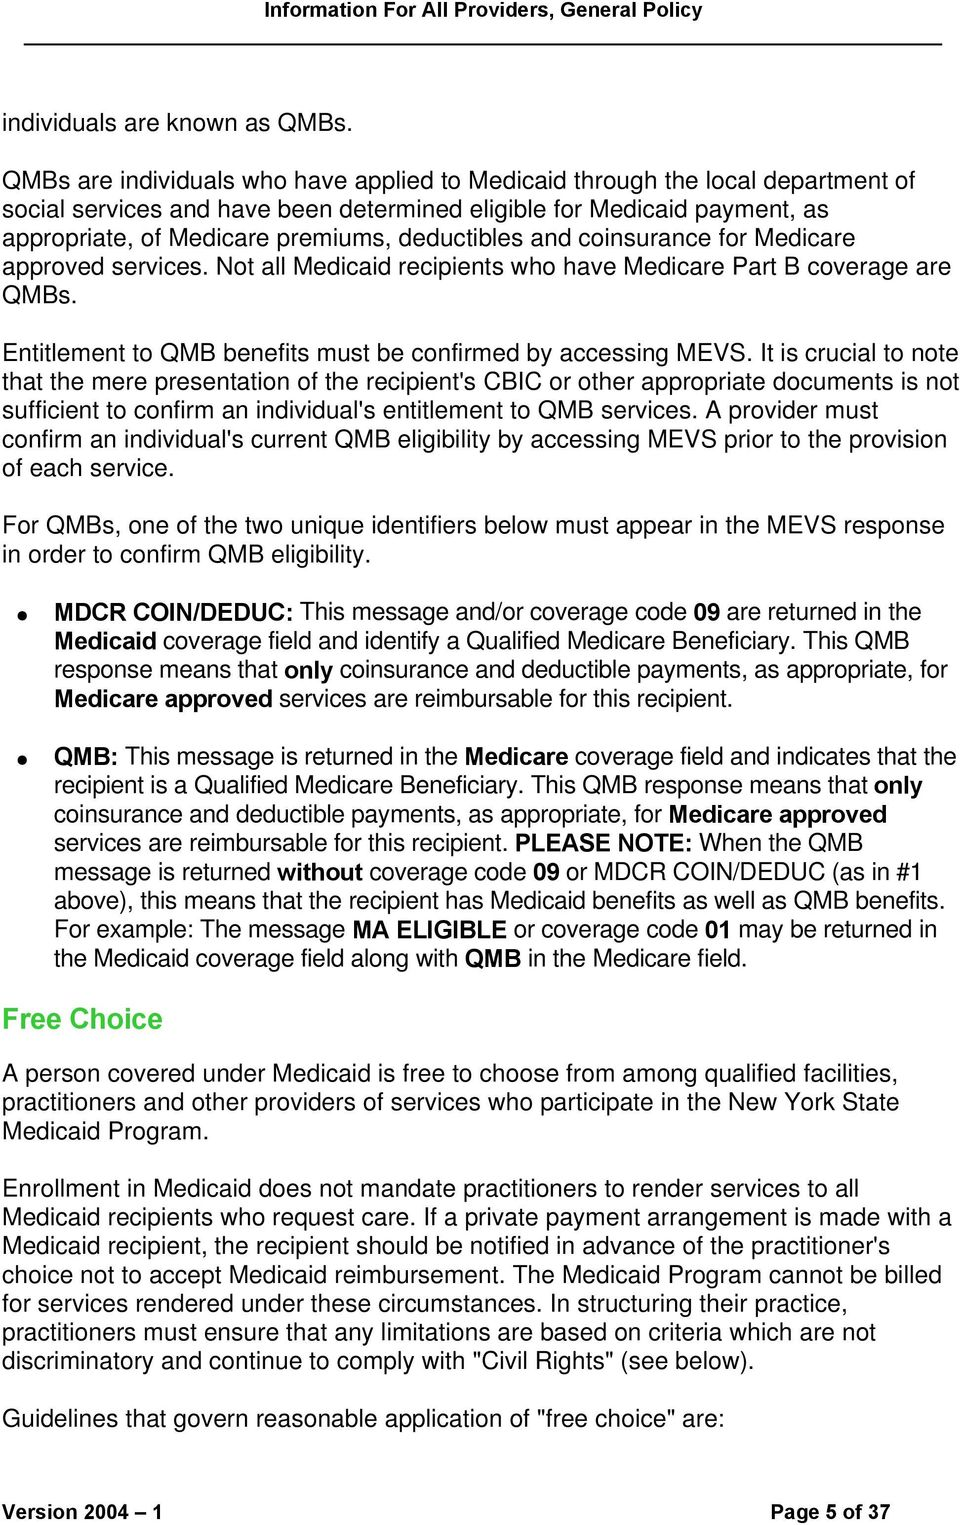 deductibles and coinsurance for Medicare approved services. Not all Medicaid recipients who have Medicare Part B coverage are QMBs. Entitlement to QMB benefits must be confirmed by accessing MEVS.